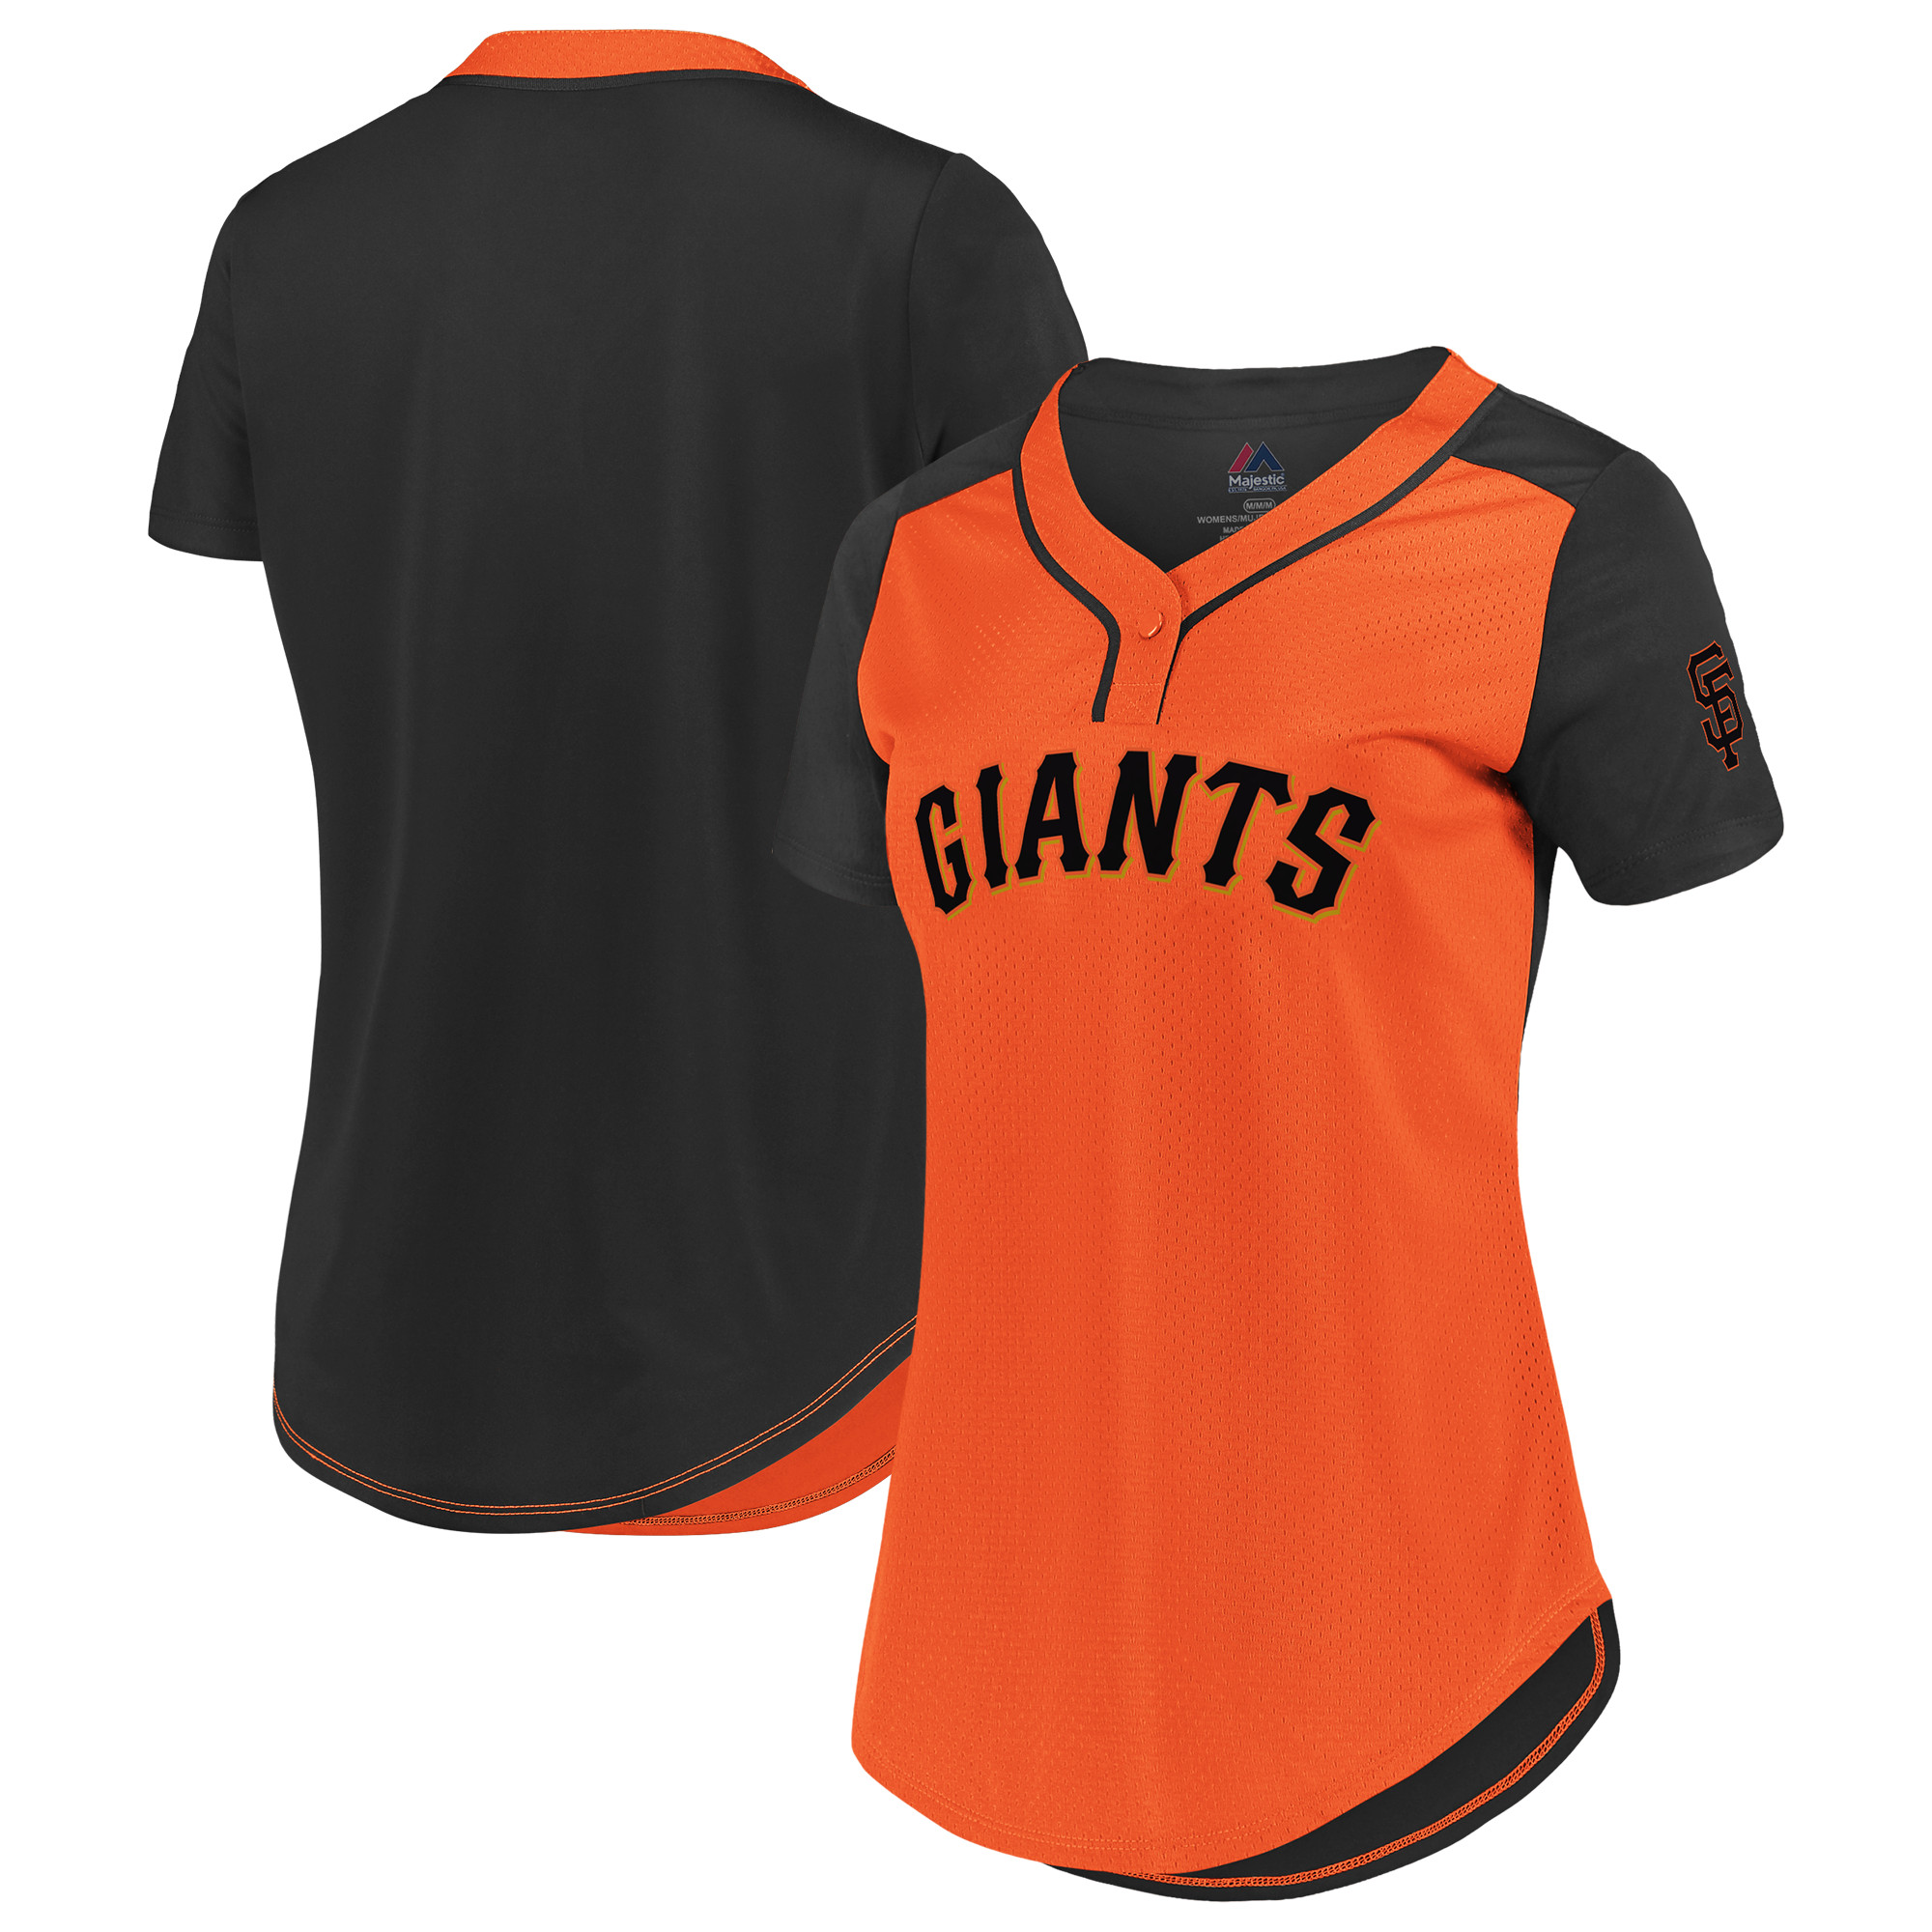 San Francisco Giants Fanatics Branded Women's Plus Size League Diva Mesh T-Shirt - Orange/Black